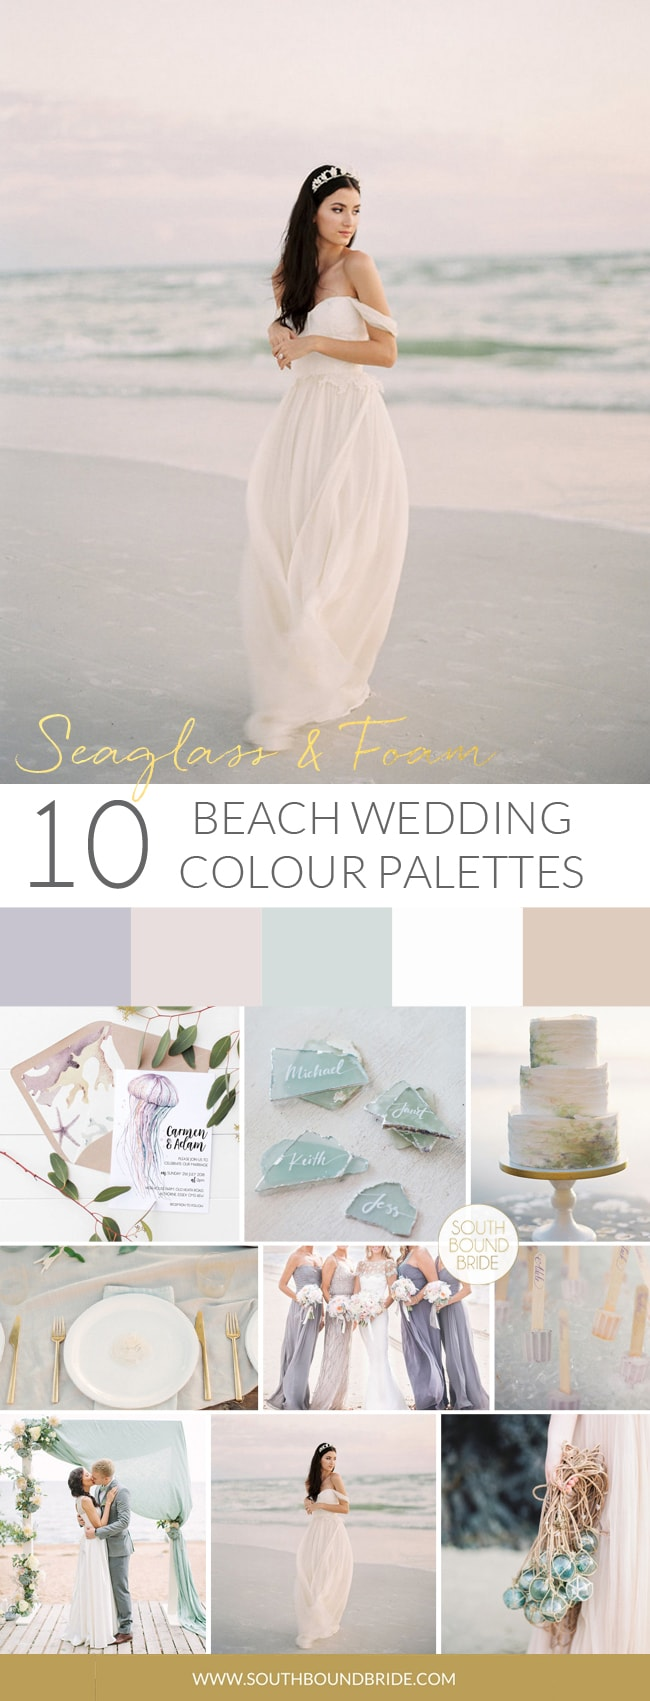 Seaglass & Foam Beach Wedding Palette | SouthBound Bride